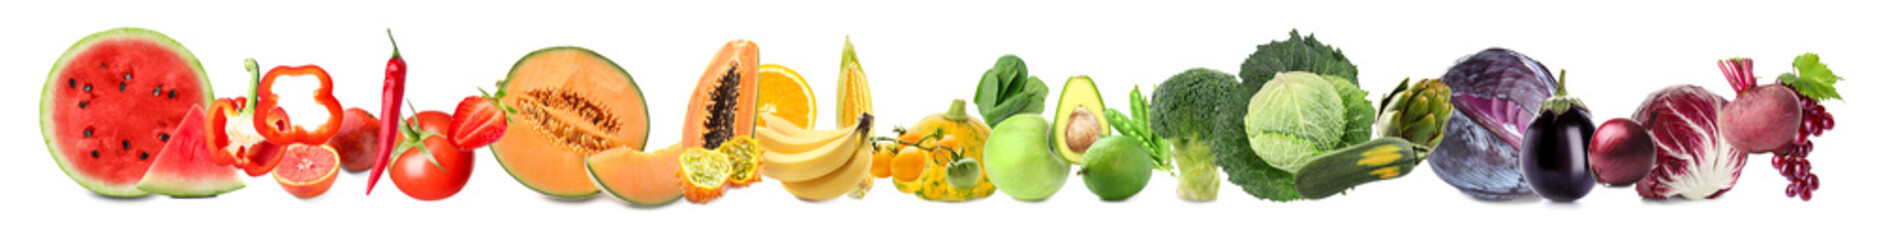 Assortment of fresh vegetables with fruits on white background